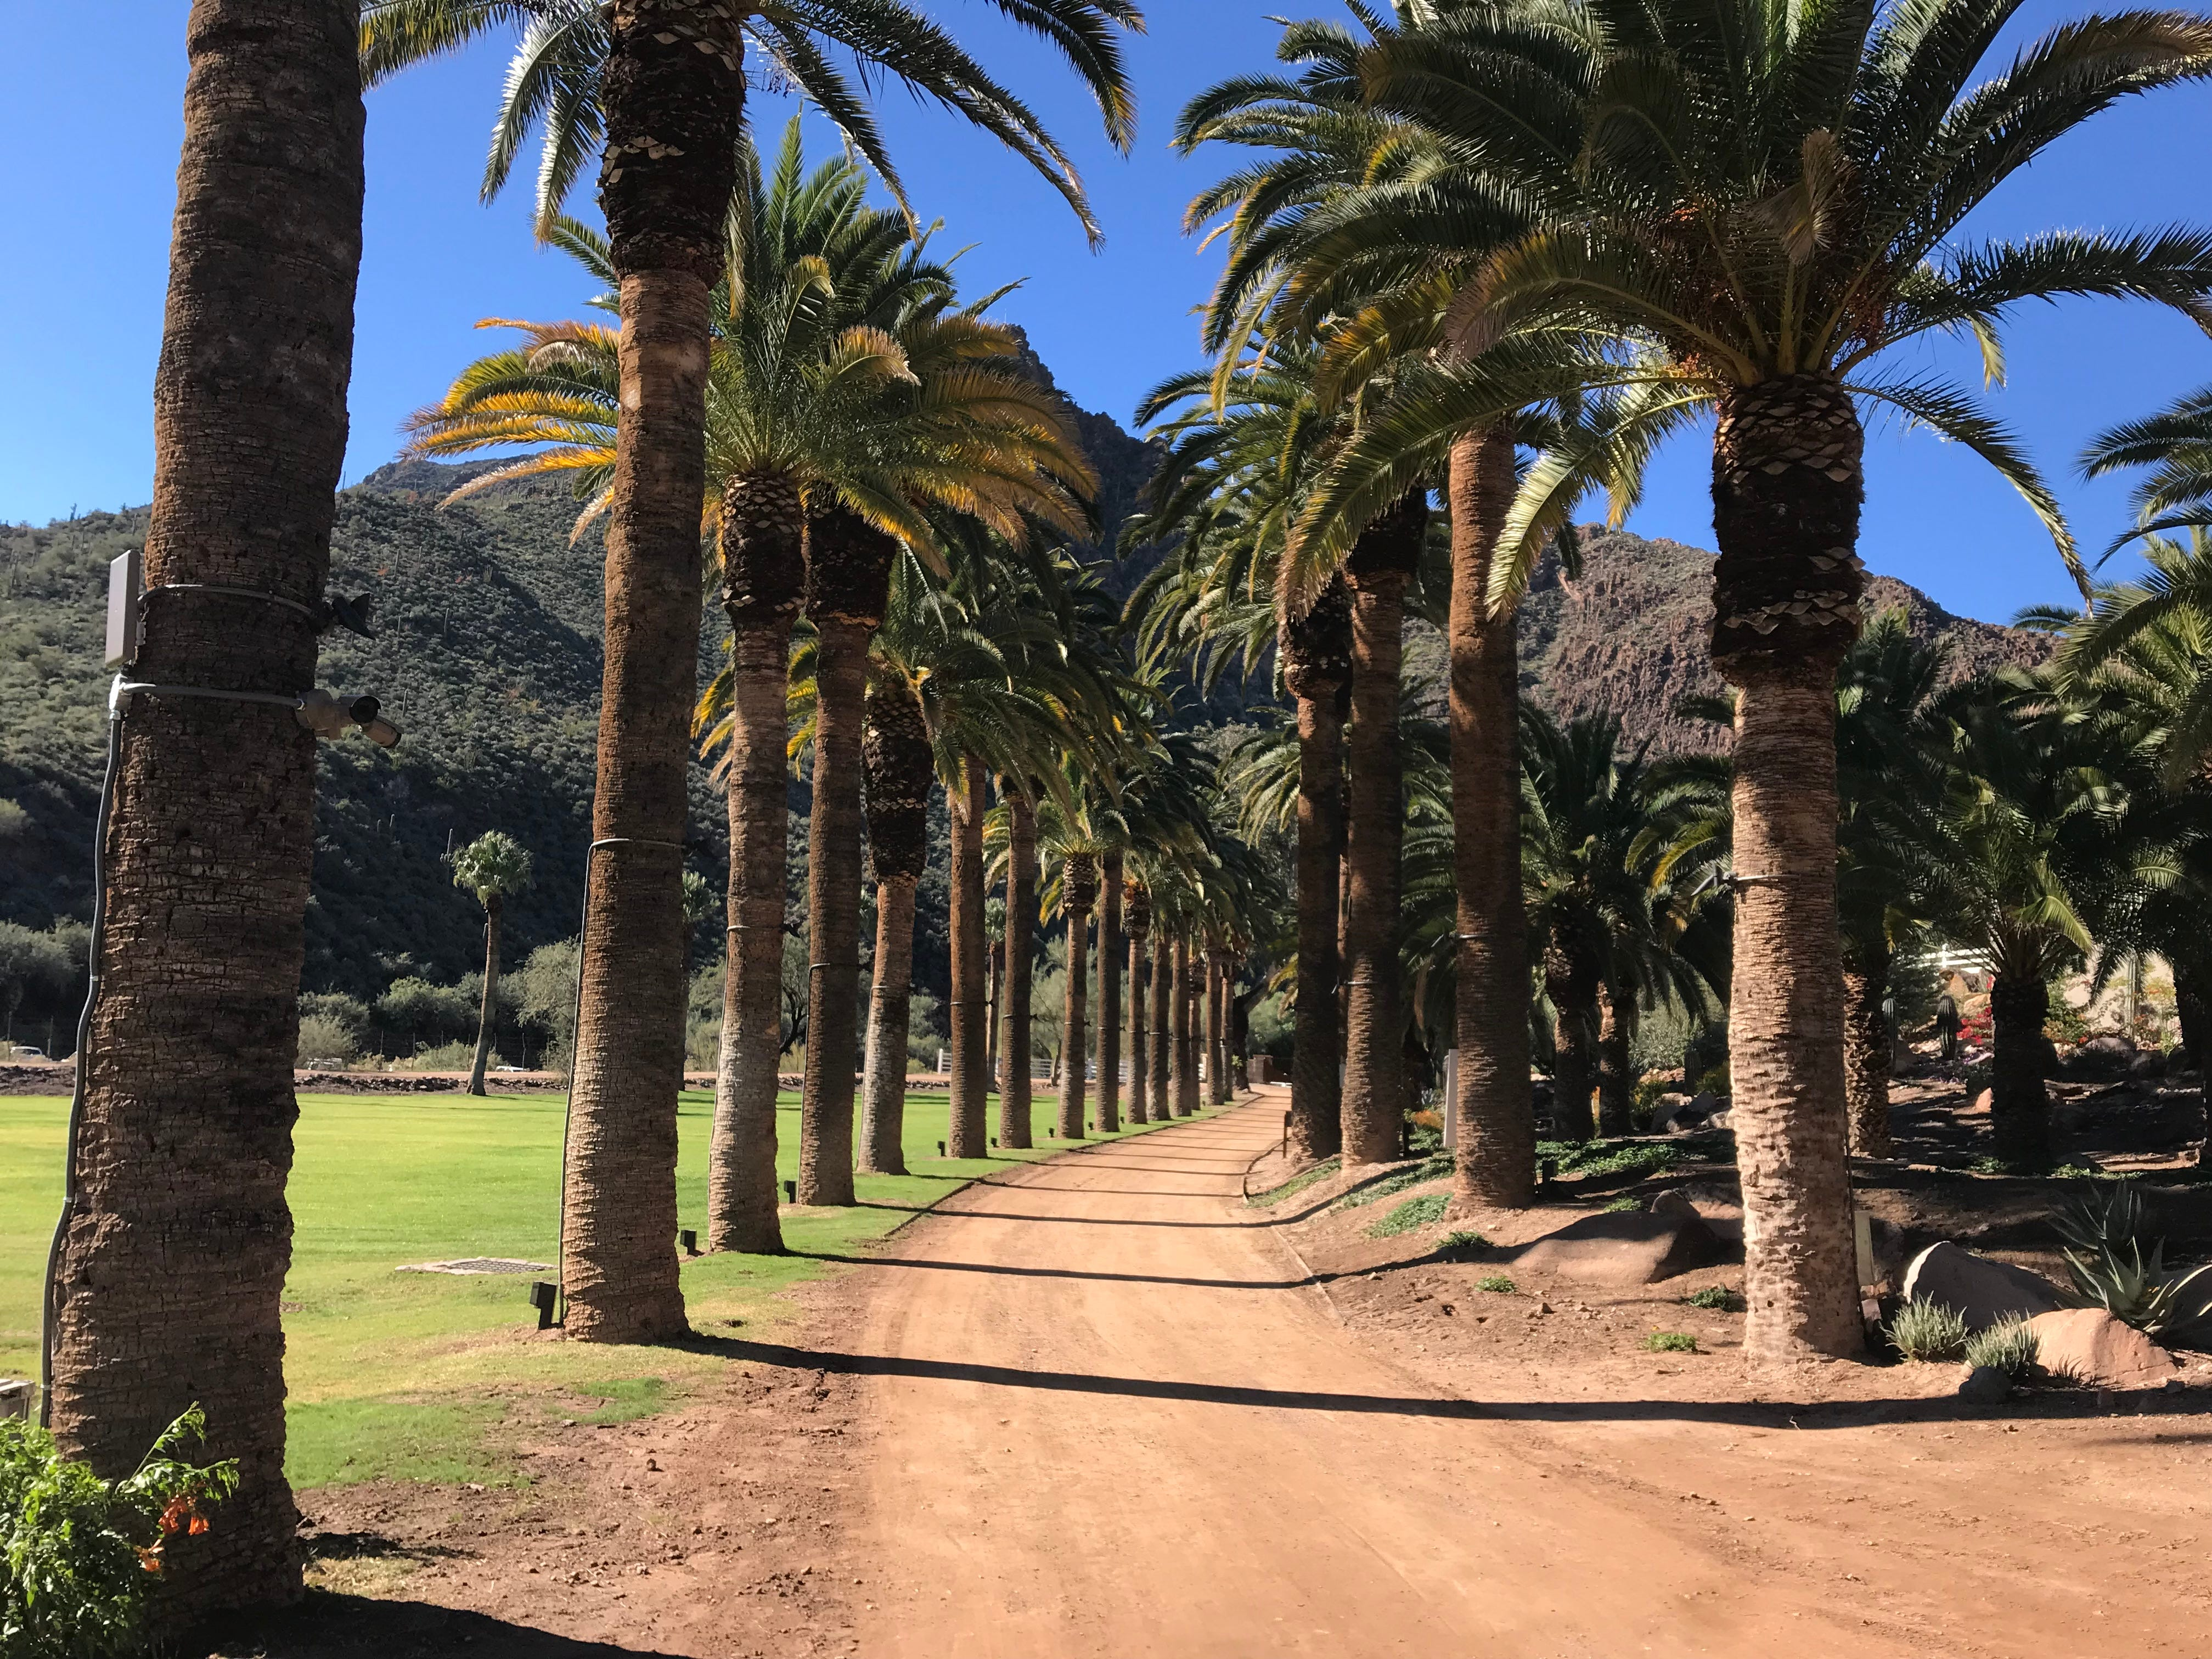 The palm-lined drive leading to Castle Hot Springs, a resort north of Phoenix.